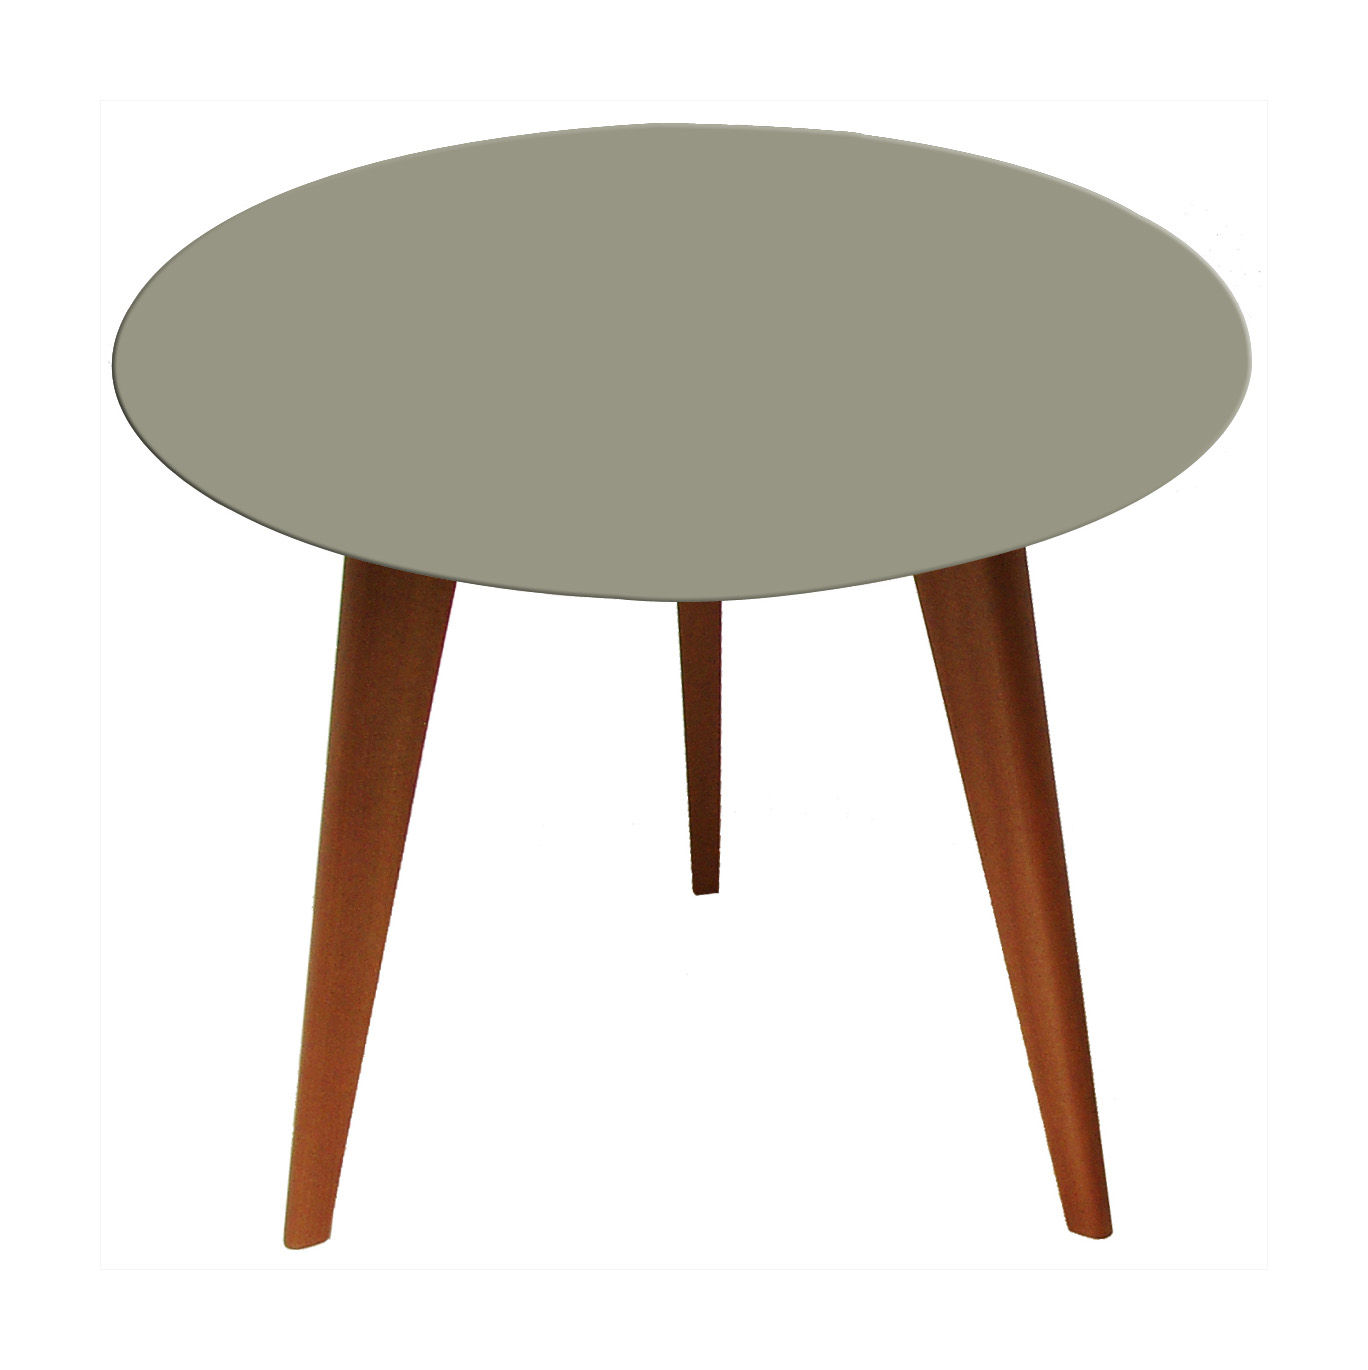 lalinde ronde coffee table round small 45 cm grey top wood legs by sentou edition. Black Bedroom Furniture Sets. Home Design Ideas